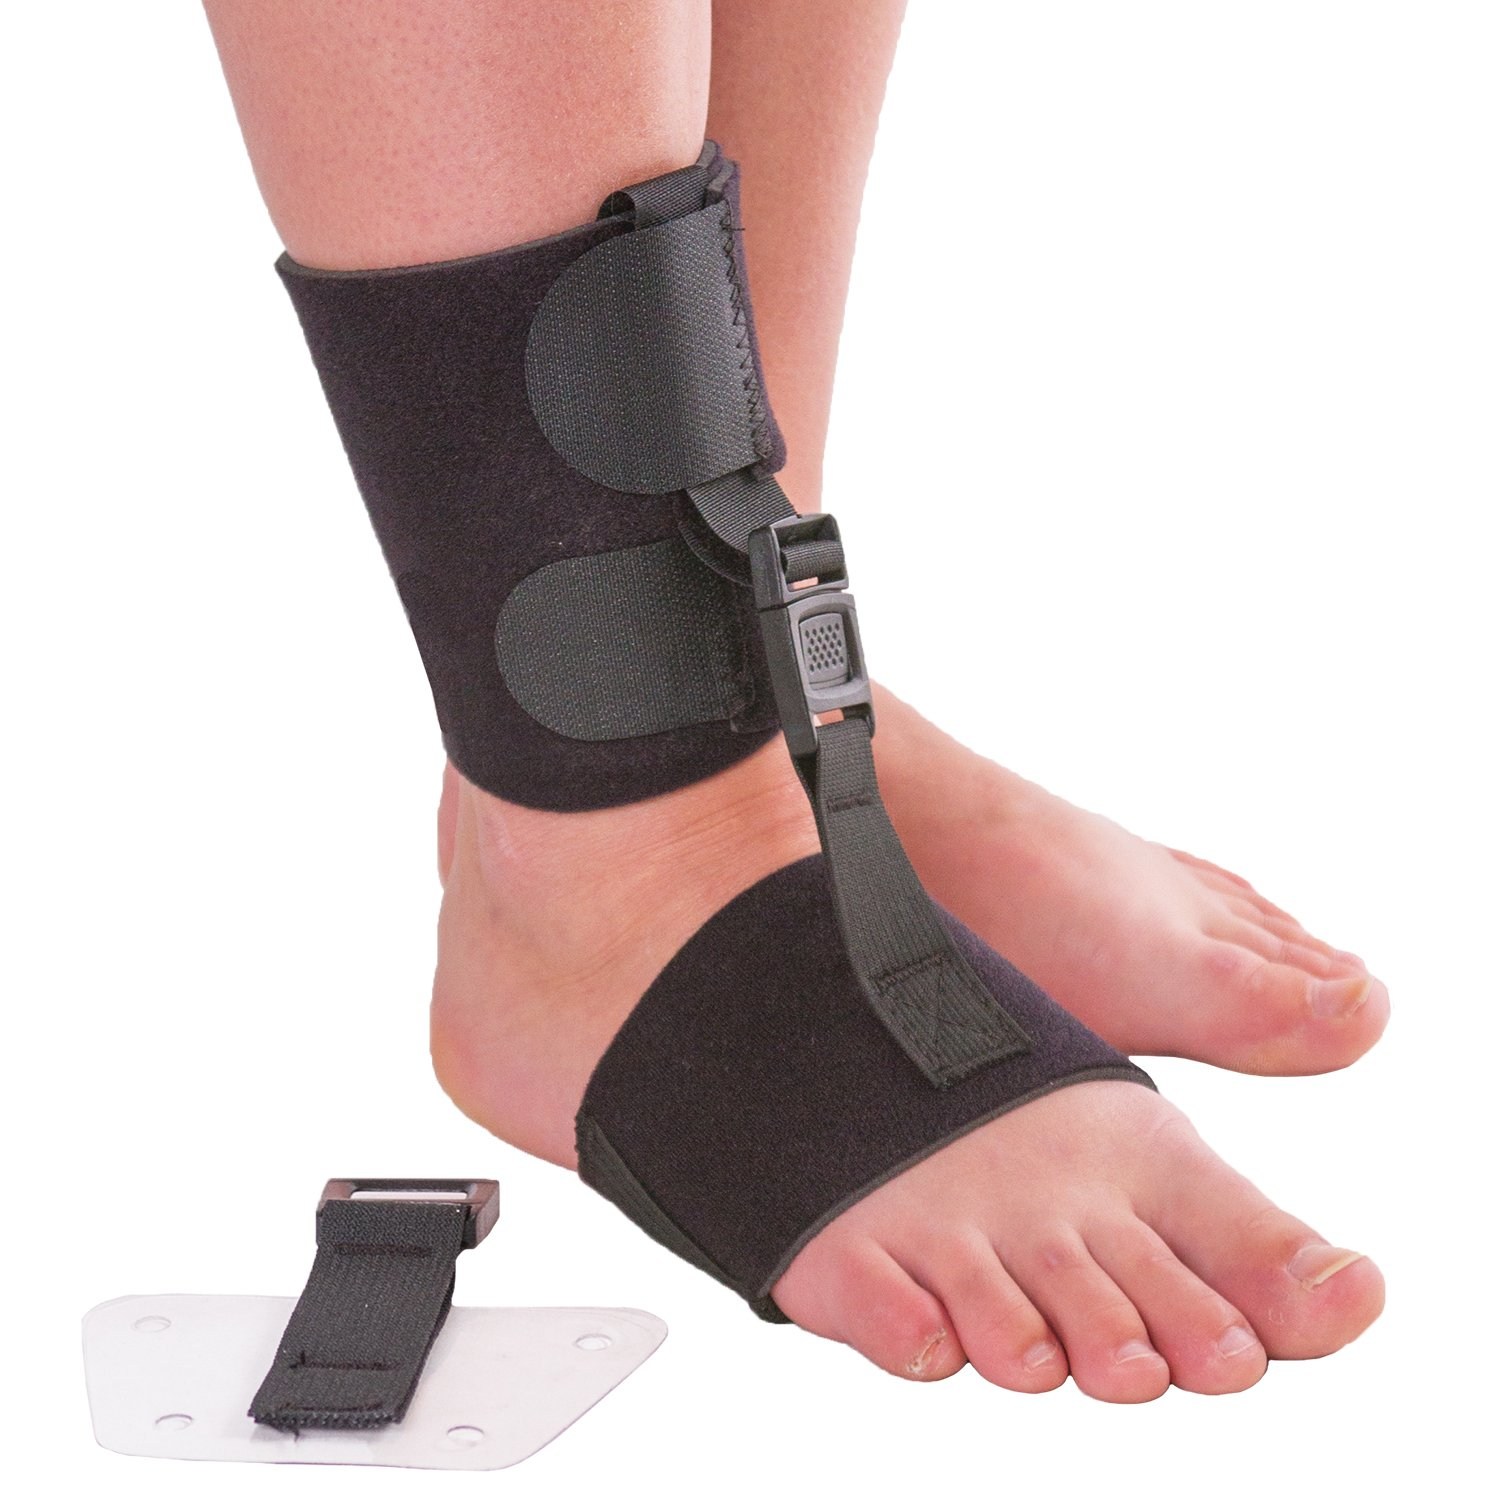 Soft AFO Foot Drop Brace | Ankle Foot Orthosis with Dorsiflexion Assist Strap Keeps Foot Up for Improved Walking Gait - Wear Barefoot or Inside Shoe (S/M - Fits Right or Left Foot) by BraceAbility